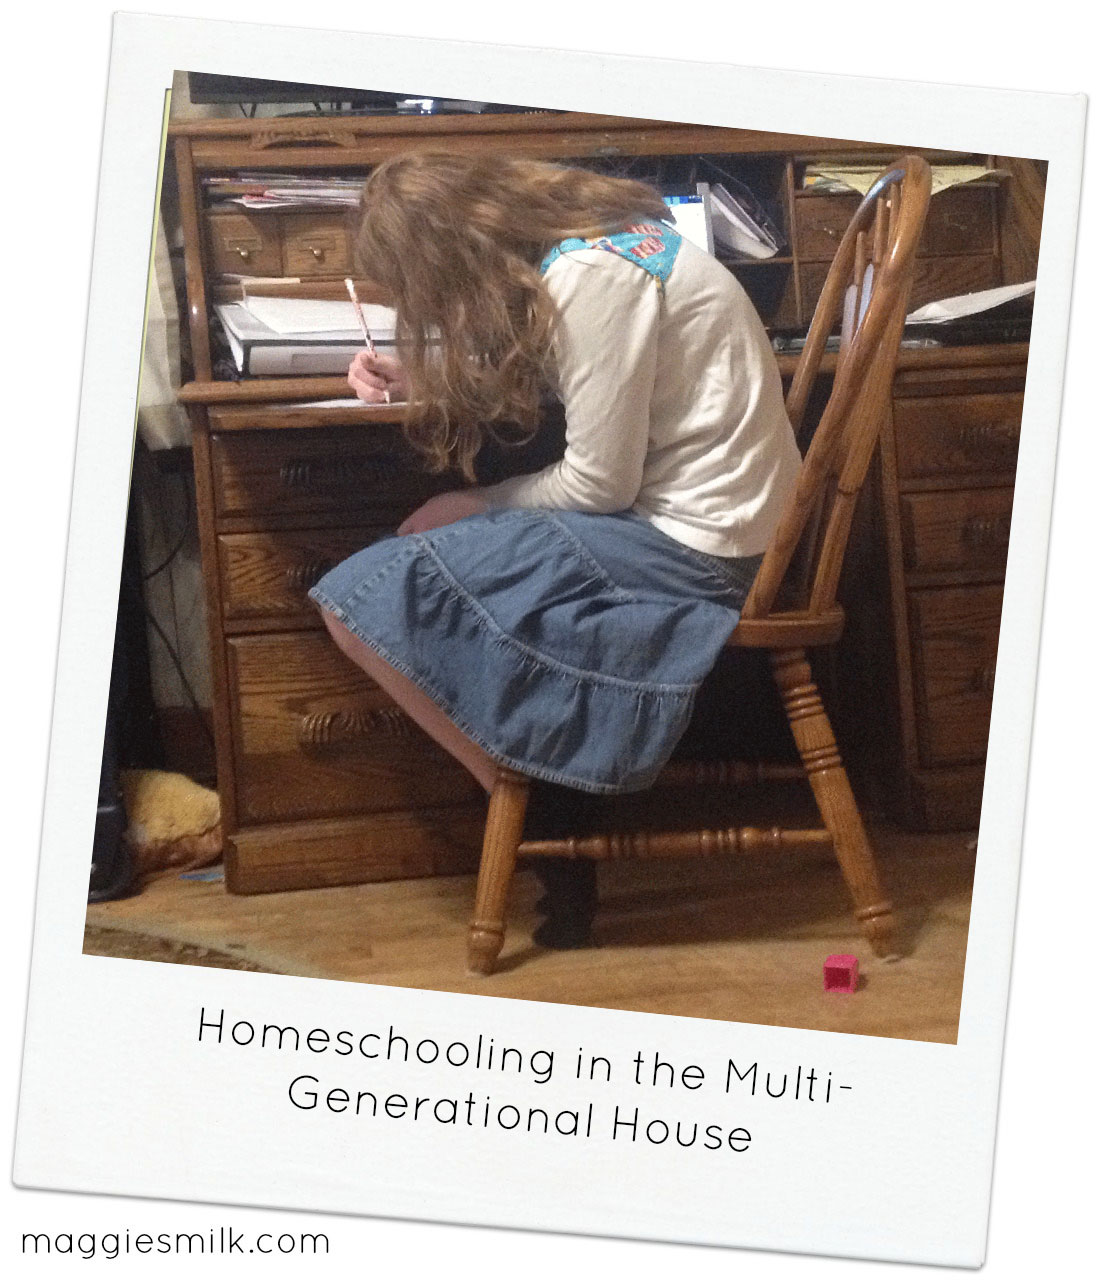 Homeschooling in the Multi-Generational House